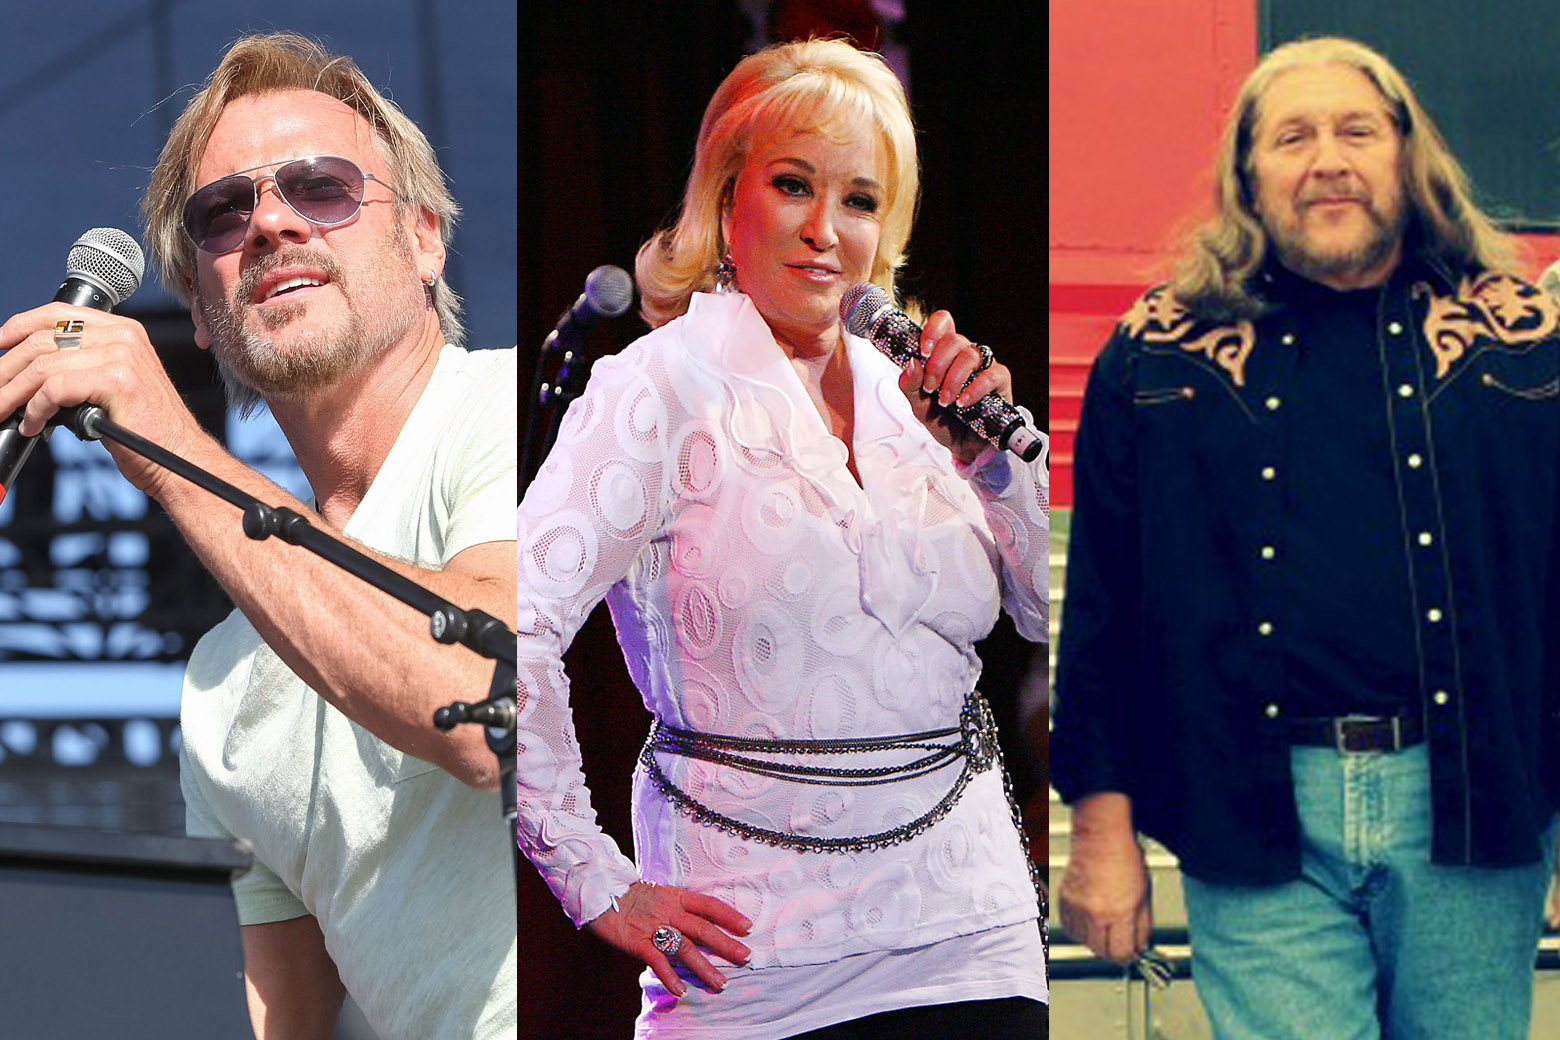 Past, present collide with Tanya Tucker, Phil Vassar at Birchmere